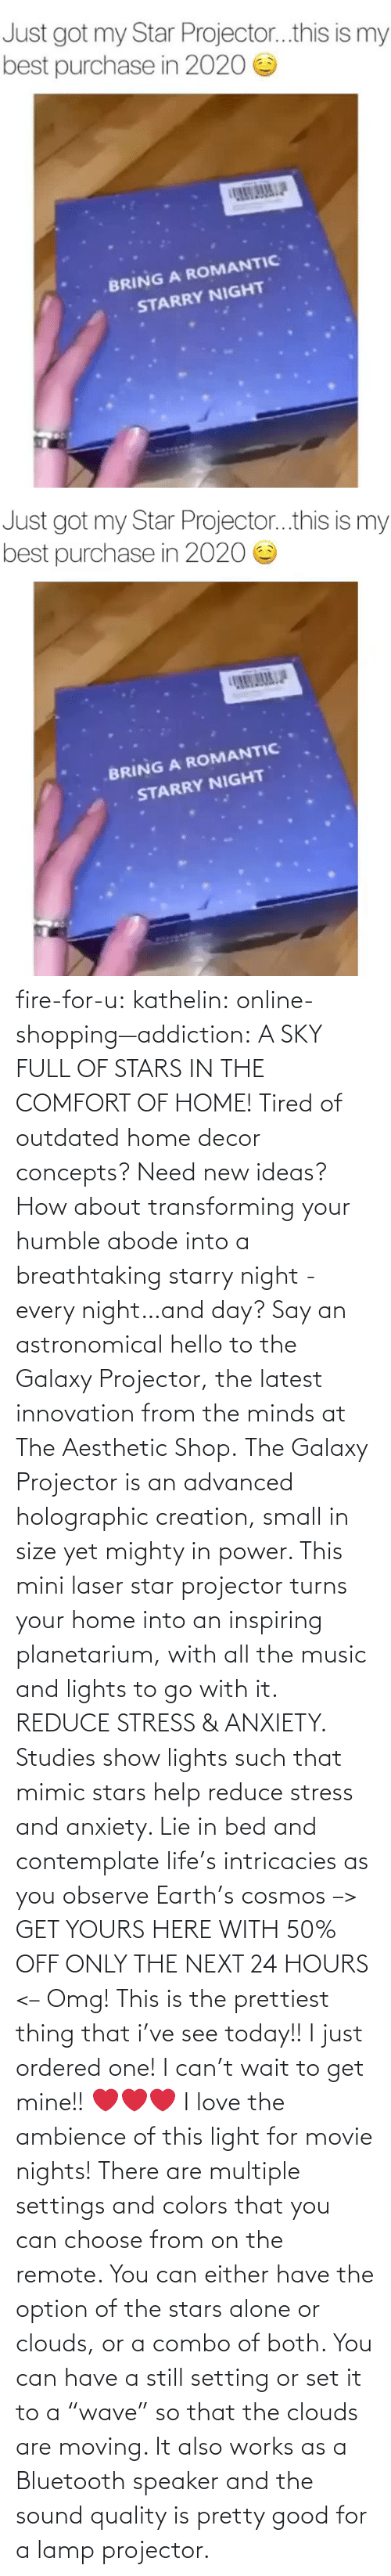 "tired: fire-for-u:  kathelin: online-shopping—addiction:  A SKY FULL OF STARS IN THE COMFORT OF HOME! Tired of outdated home decor concepts? Need new ideas? How about transforming your humble abode into a breathtaking starry night - every night…and day? Say an astronomical hello to the Galaxy Projector, the latest innovation from the minds at The Aesthetic Shop. The Galaxy Projector is an advanced holographic creation, small in size yet mighty in power. This mini laser star projector turns your home into an inspiring planetarium, with all the music and lights to go with it. REDUCE STRESS & ANXIETY. Studies show lights such that mimic stars help reduce stress and anxiety. Lie in bed and contemplate life's intricacies as you observe Earth's cosmos  –> GET YOURS HERE WITH 50% OFF ONLY THE NEXT 24 HOURS <–   Omg! This is the prettiest thing that i've see today!! I just ordered one! I can't wait to get mine!! ❤️️❤️️❤️️  I love the ambience of this light for movie nights! There are multiple settings and colors that you can choose from on the remote. You can either have the option of the stars alone or clouds, or a combo of both. You can have a still setting or set it to a ""wave"" so that the clouds are moving. It also works as a Bluetooth speaker and the sound quality is pretty good for a lamp projector."